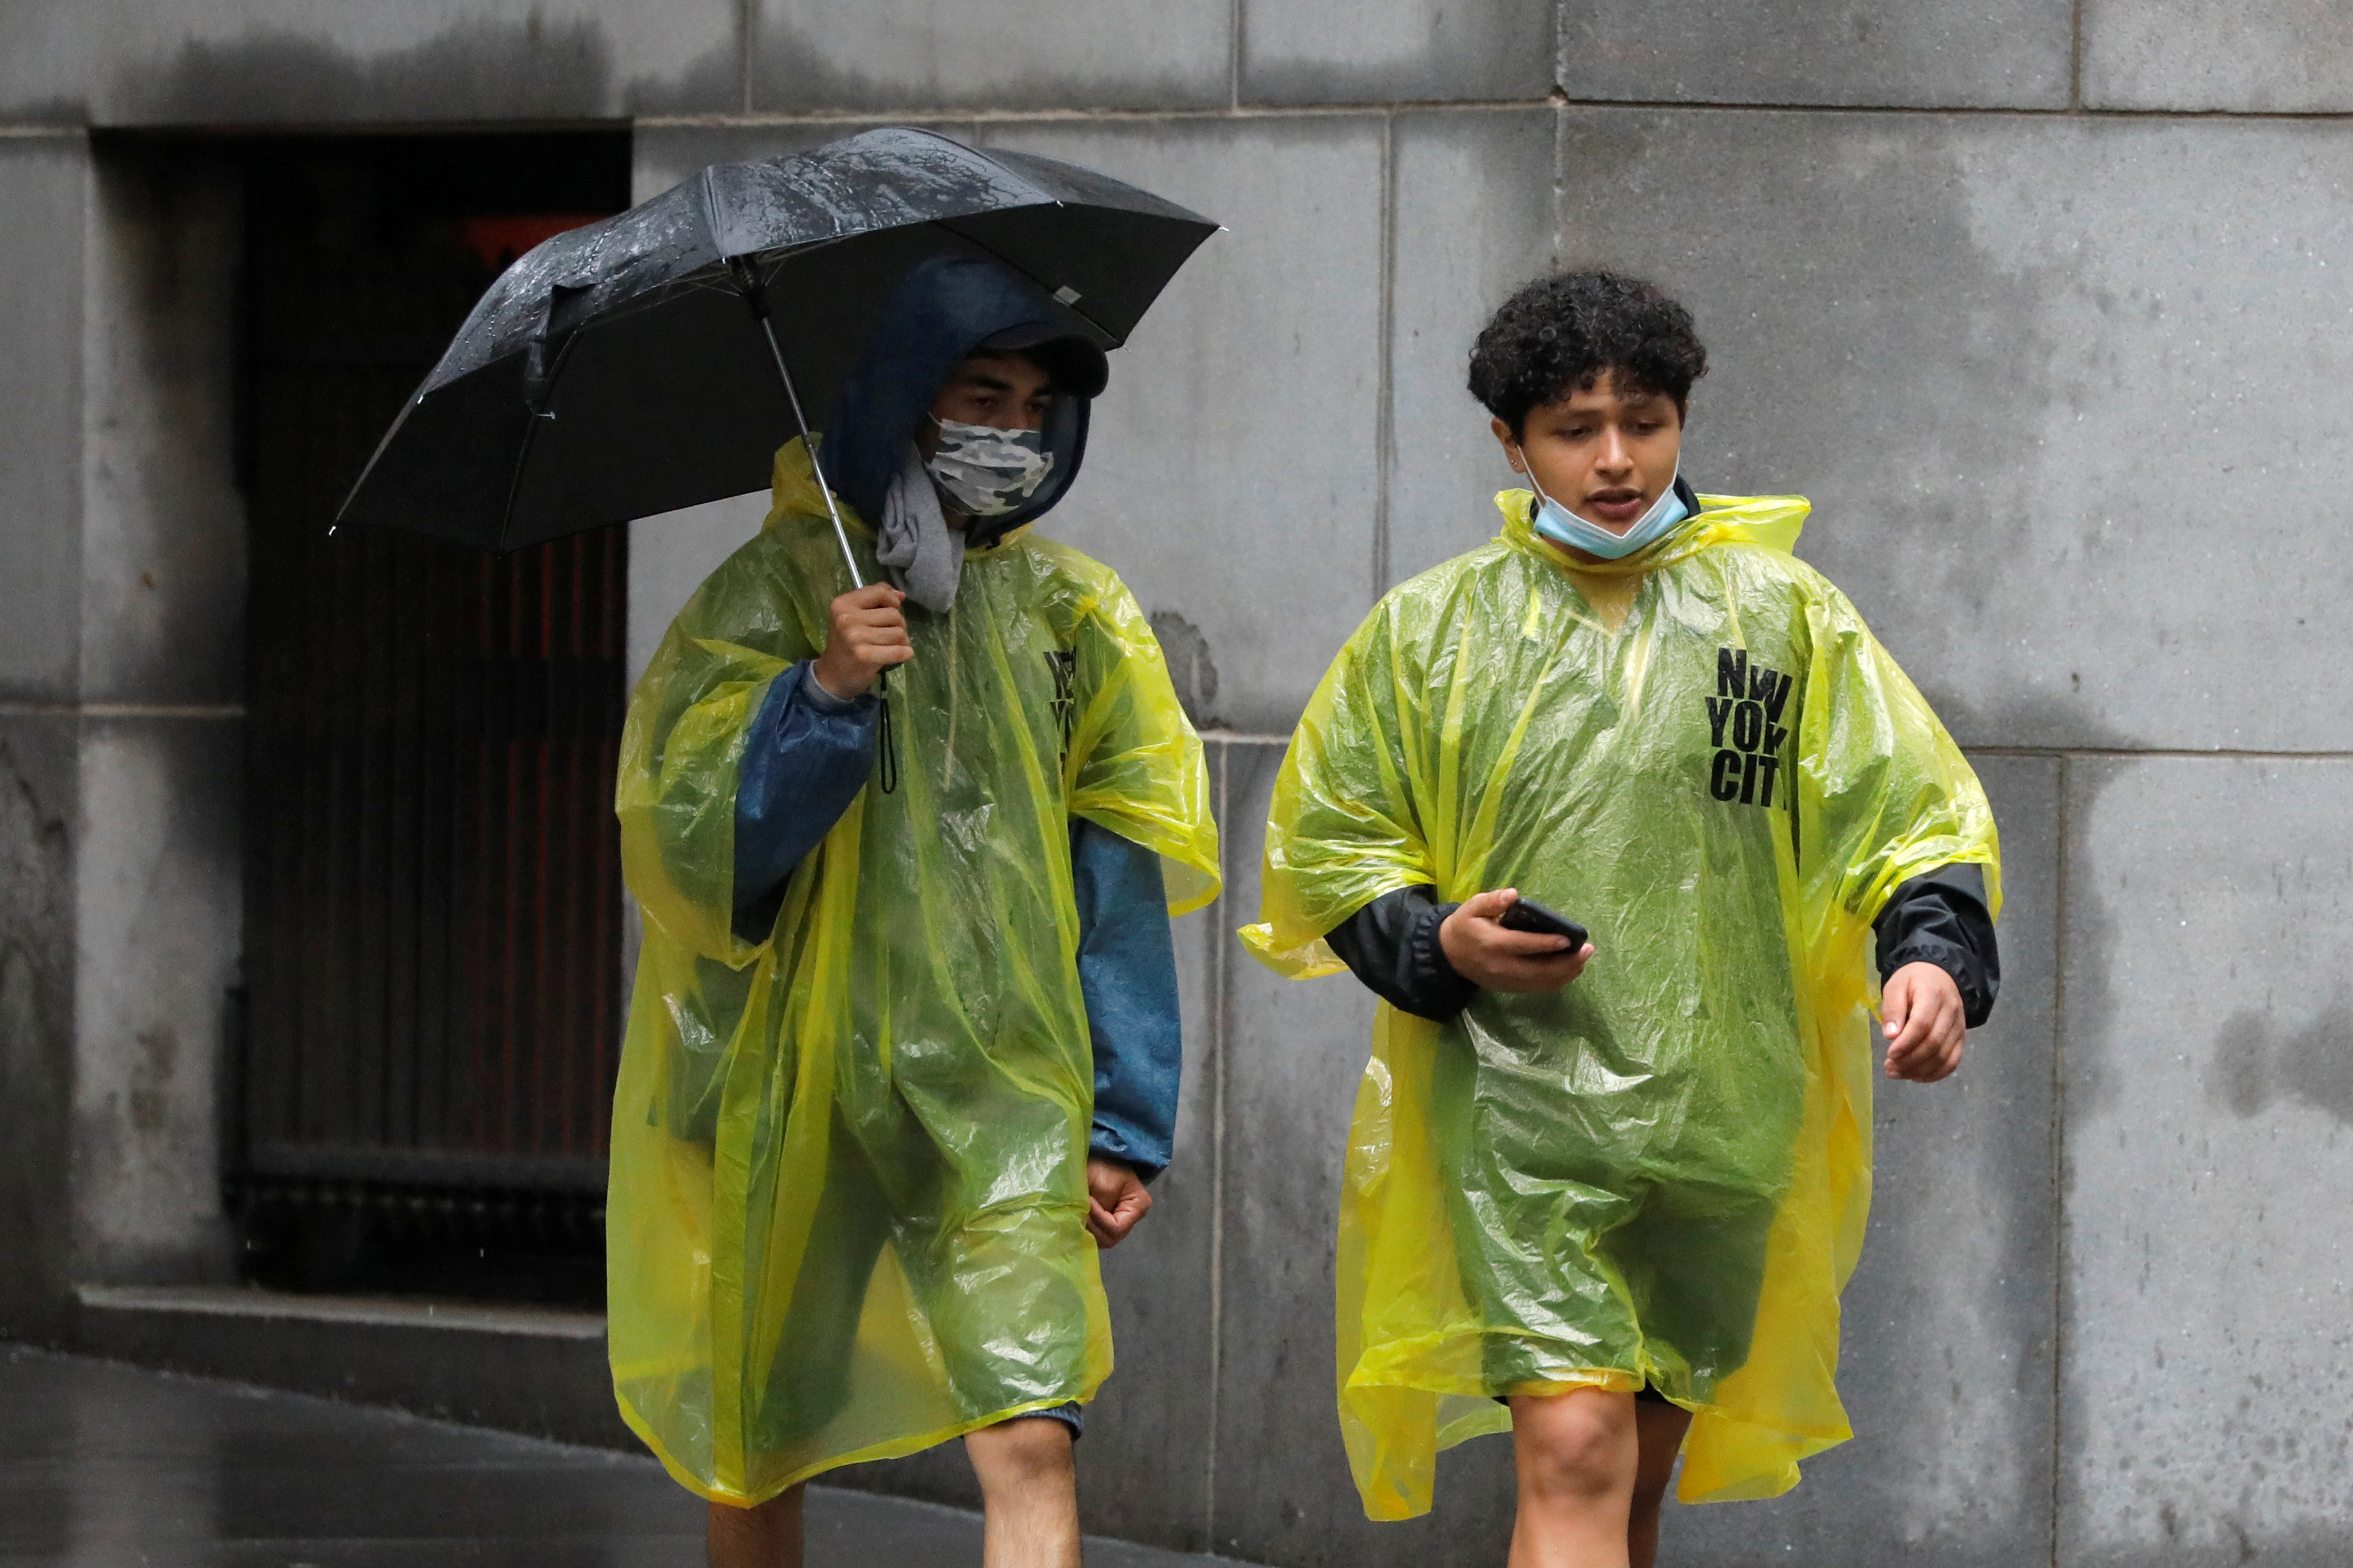 People in plastic rain ponchos walk through the Financial District as Tropical Storm Henri affected the area in Manhattan, New York City, U.S., August 23, 2021. REUTERS/Andrew Kelly